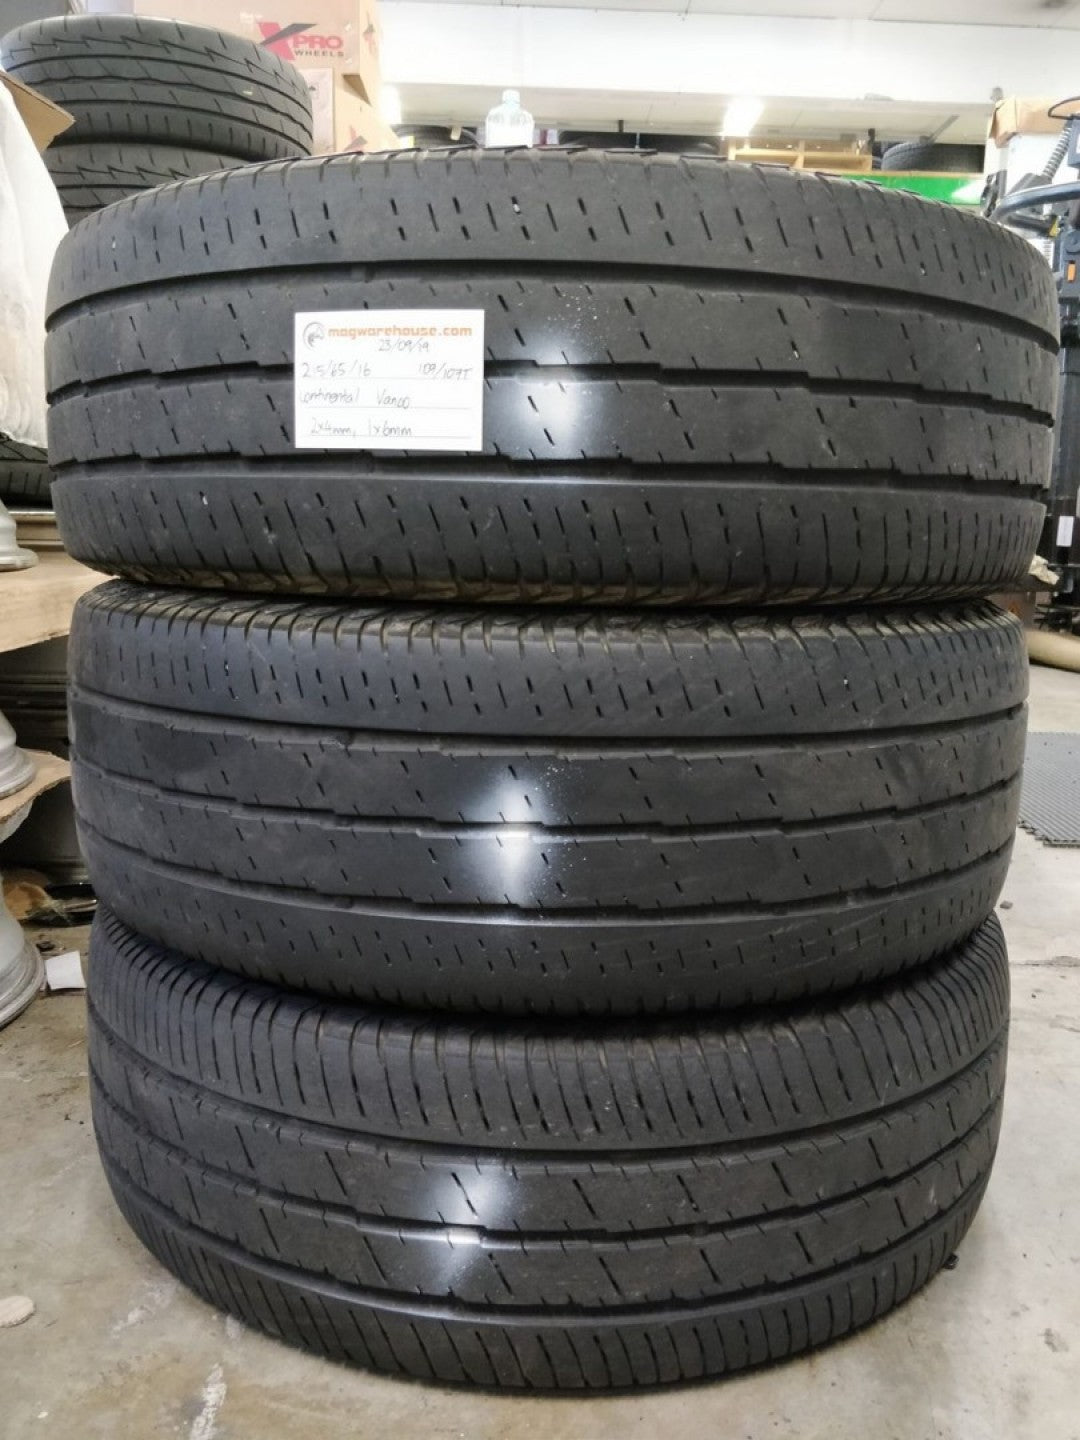 215/65R16 109/107T Continental Vanco 2x4mm, 1x6mm, FREE Fitting with BUYNOW!!!